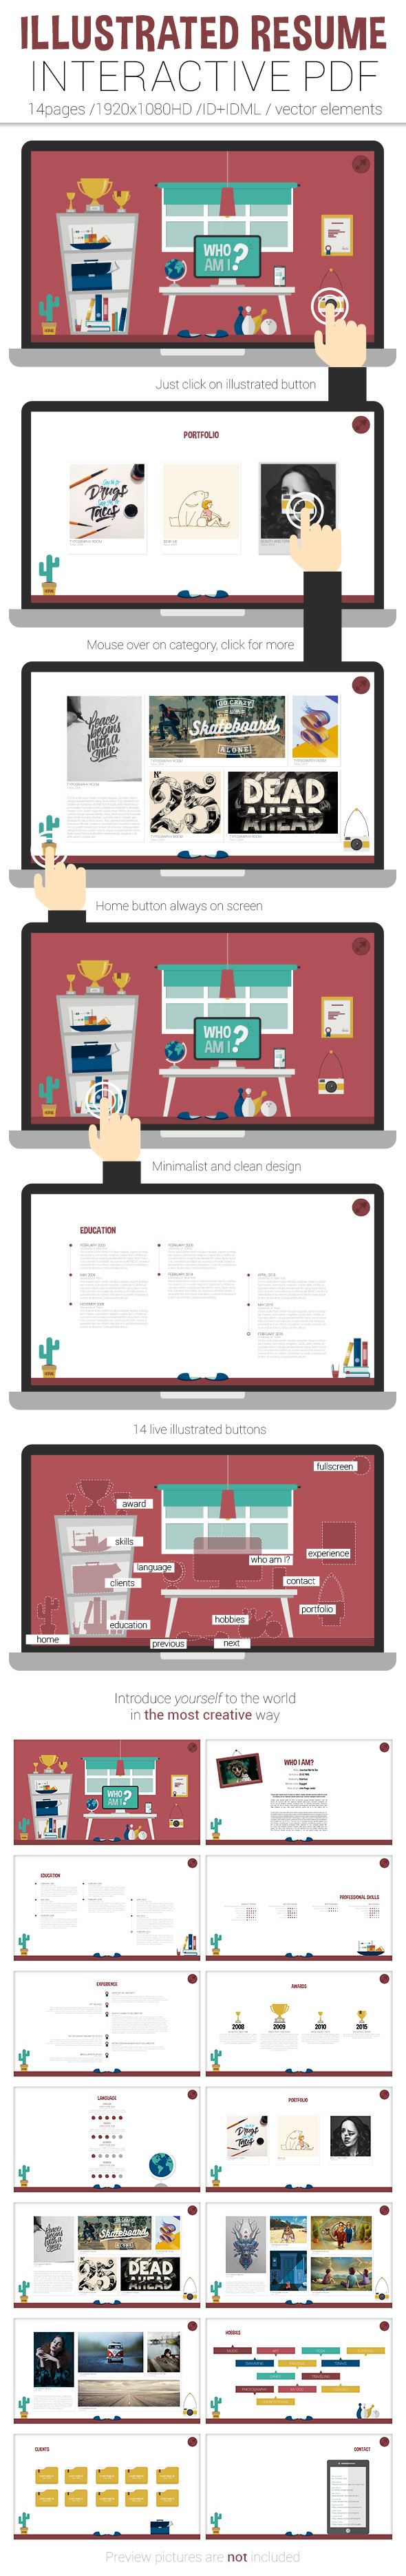 Sales Manager Resume Objective Pdf Illustrated Resume Interactive Pdf On Behance Resume Education Section with Pictures Of Resume Word  Linkedin Resume Examples Excel